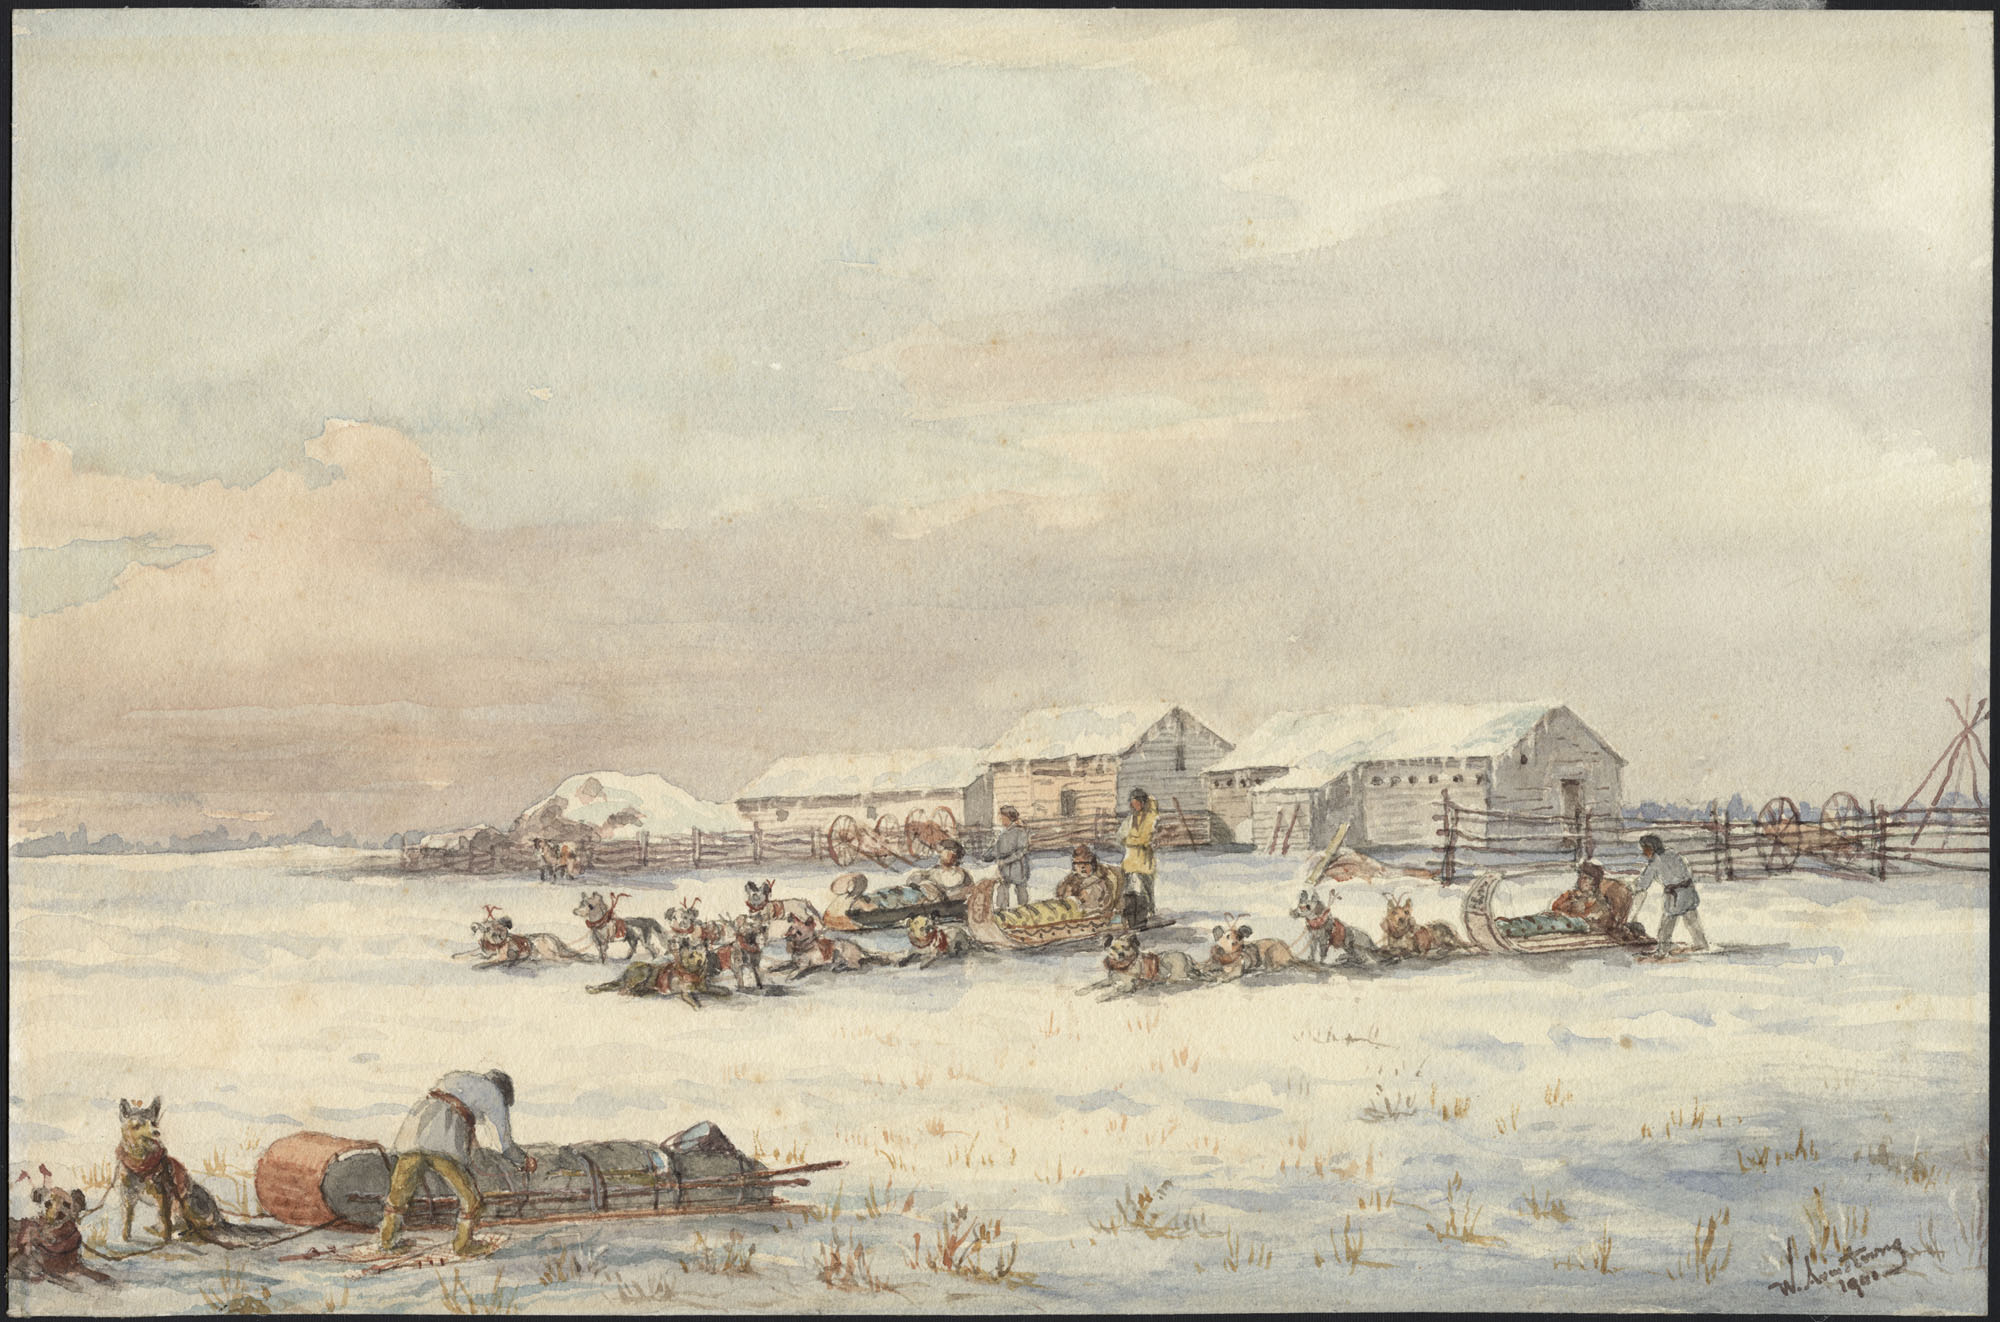 Watercolour over pencil on wove paper of a sled in the foreground and, in the centre of the composition, another three sleds, each  led by four dogs and carrying two men, with three buildings surrounded by a fence and two-wheeled carts in the background.